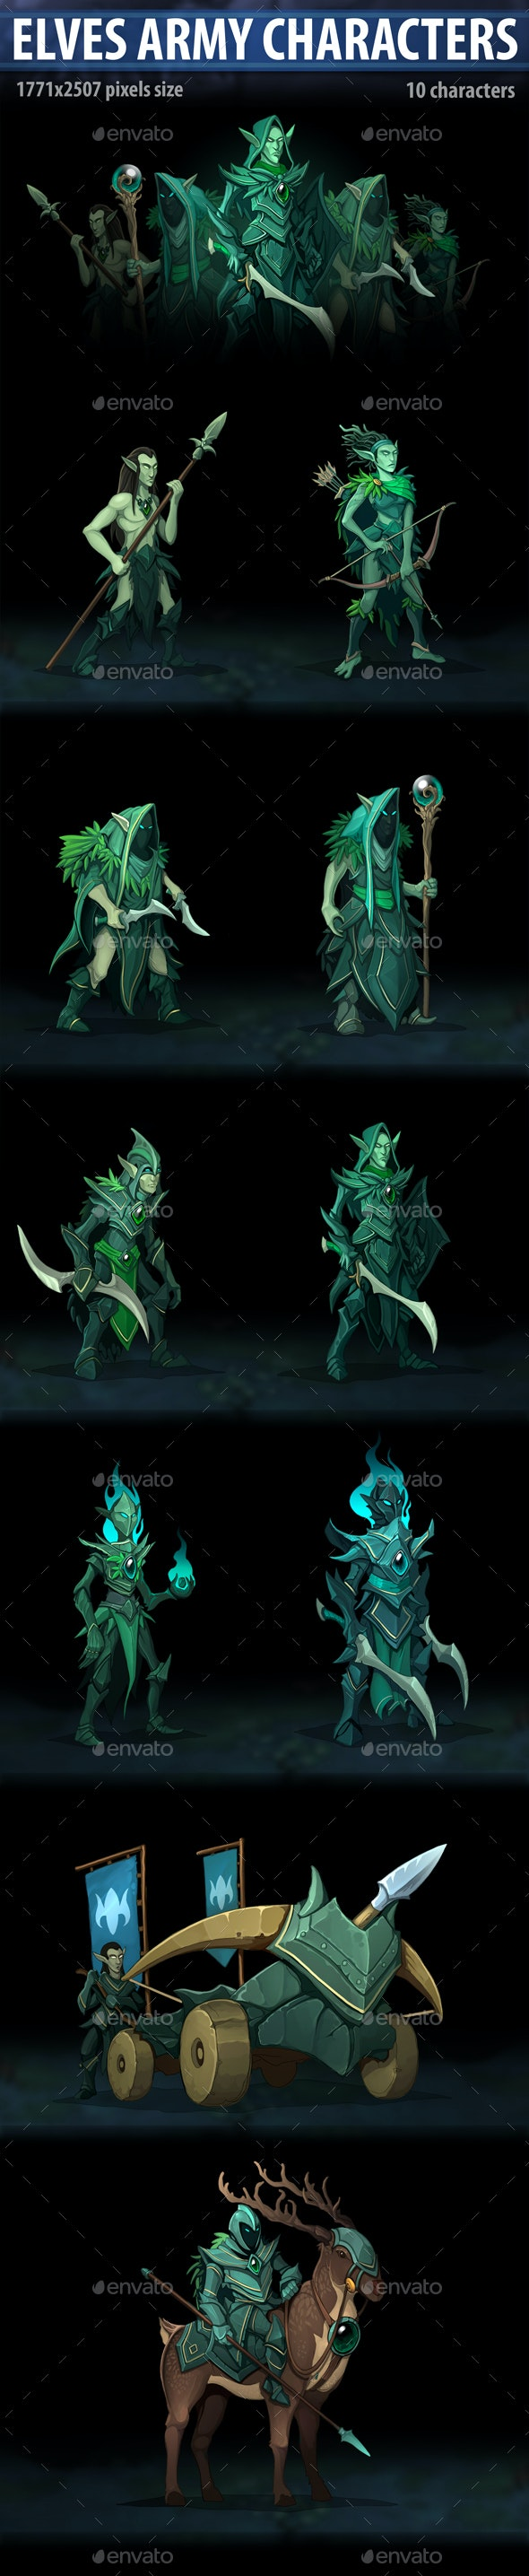 Elves Army Characters - Miscellaneous Game Assets